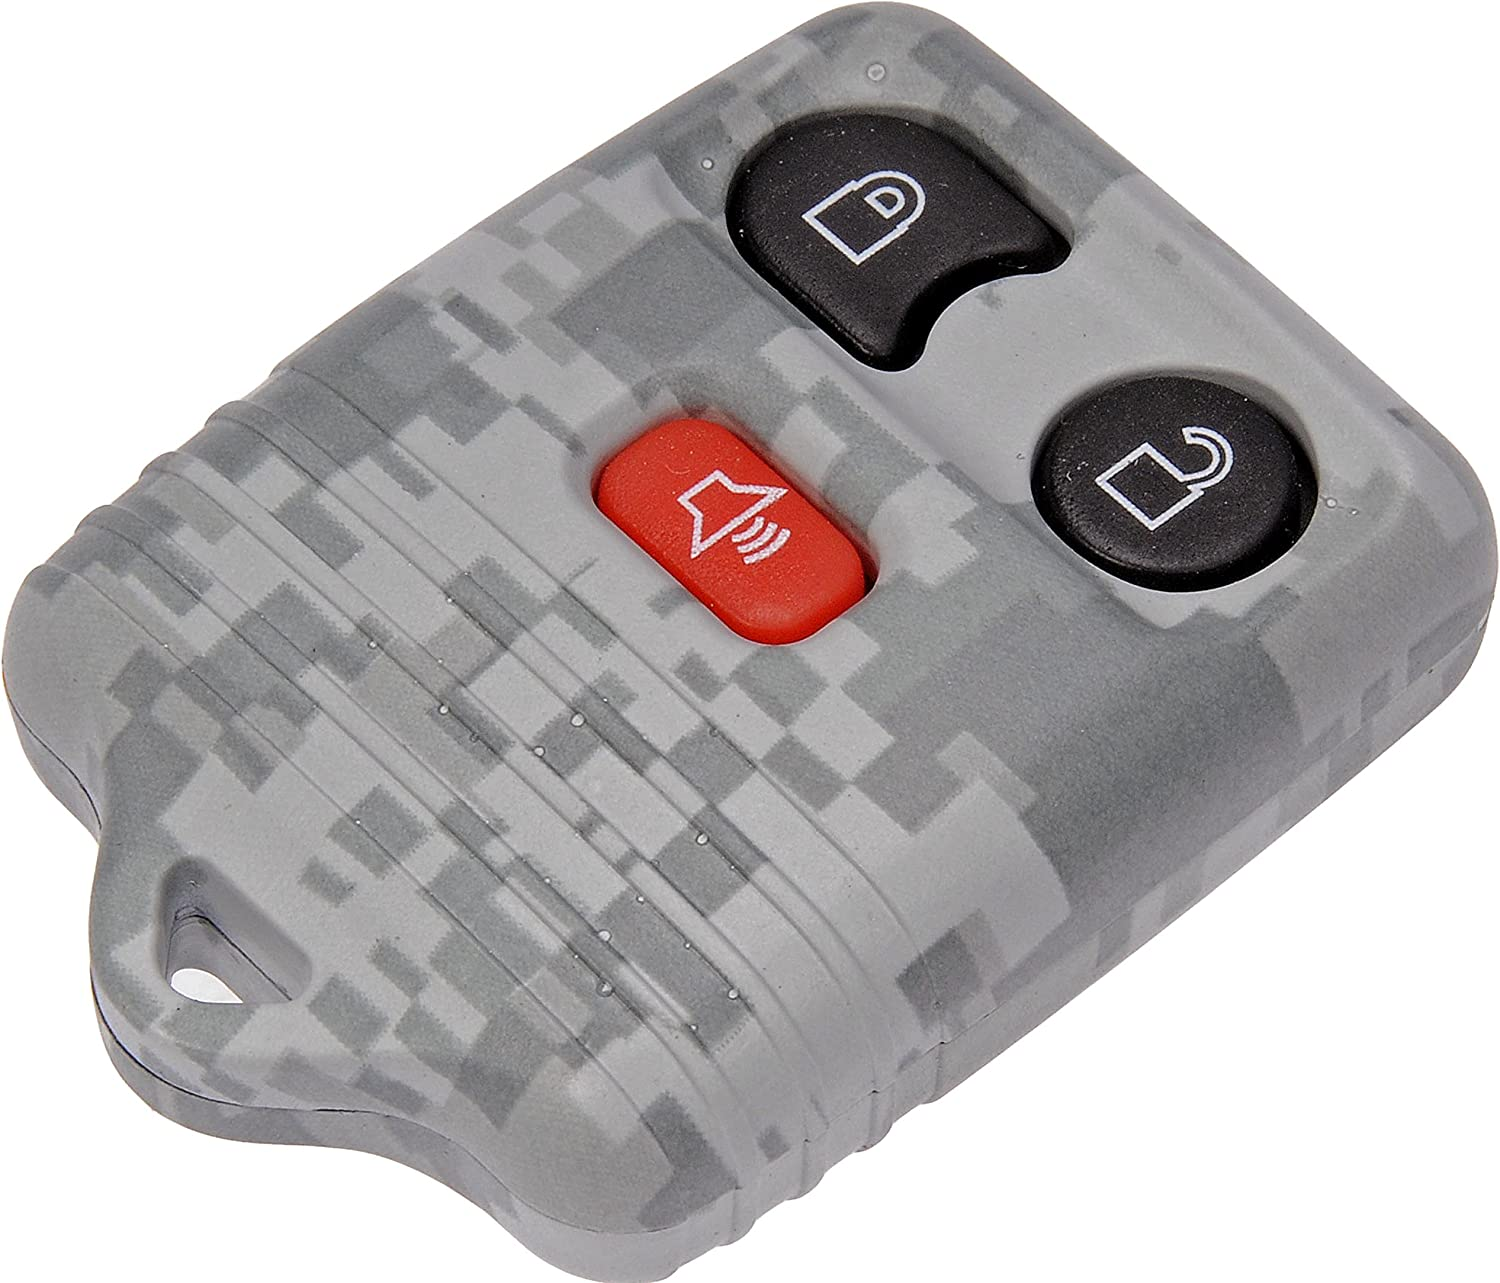 Dorman 13625GYC Keyless Entry Transmitter New Shipping Free Shipping for Cover Select Super special price Model